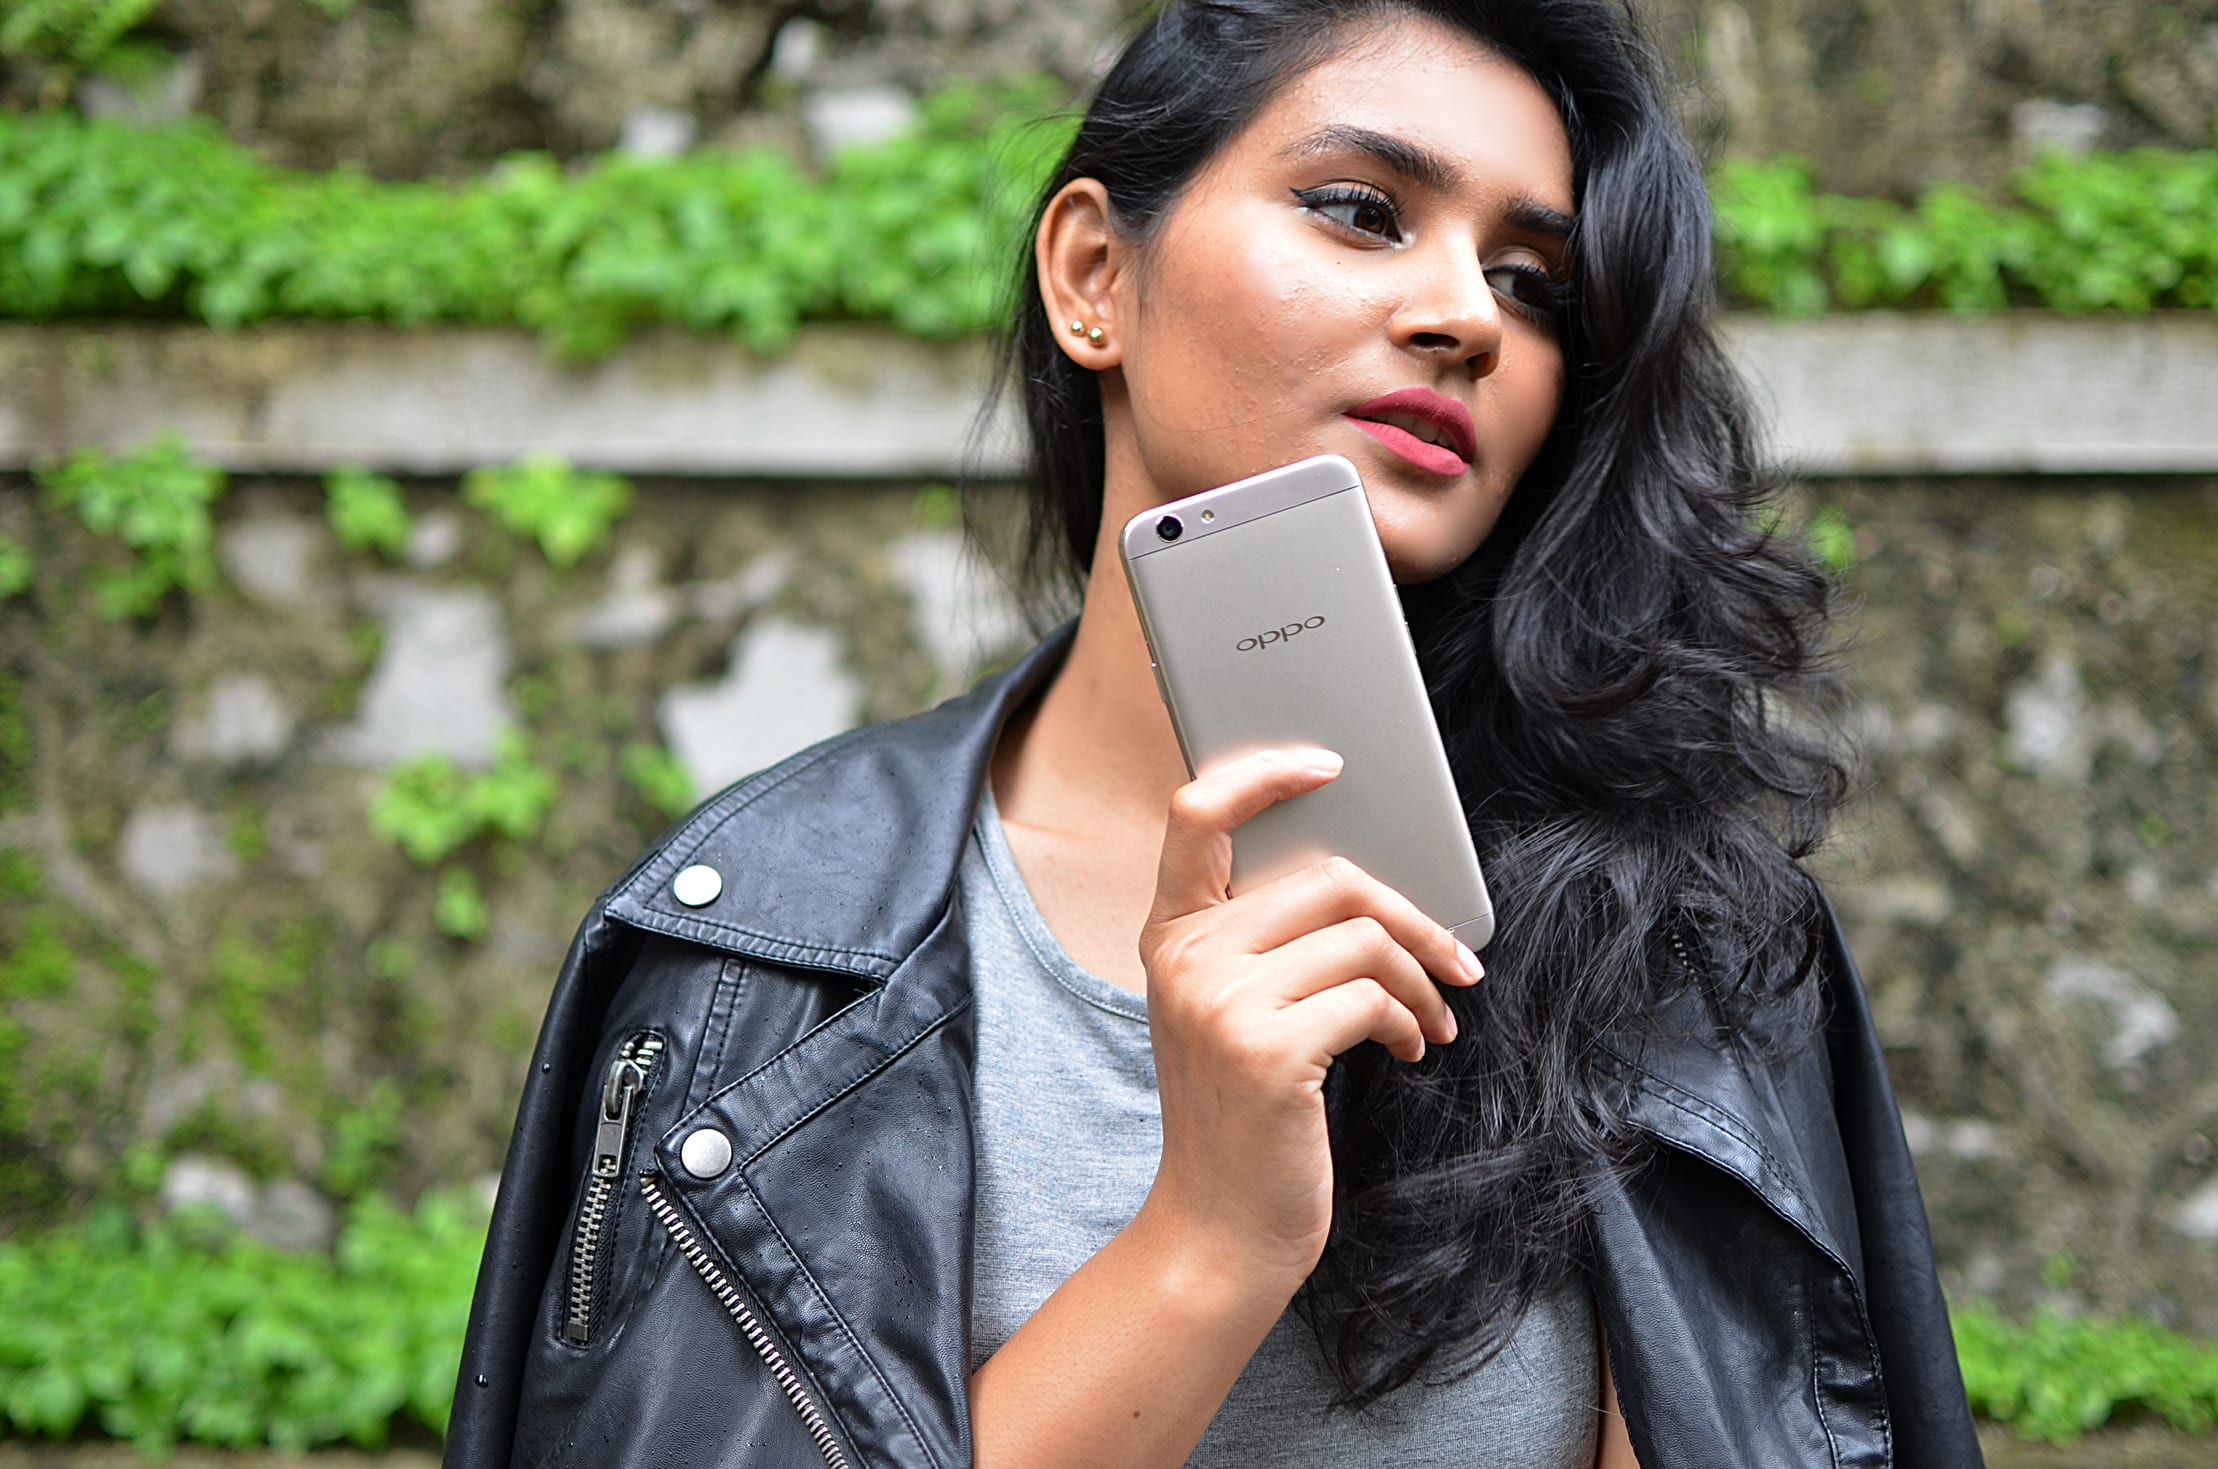 Oppo-F1S-Review-shanayas (2)